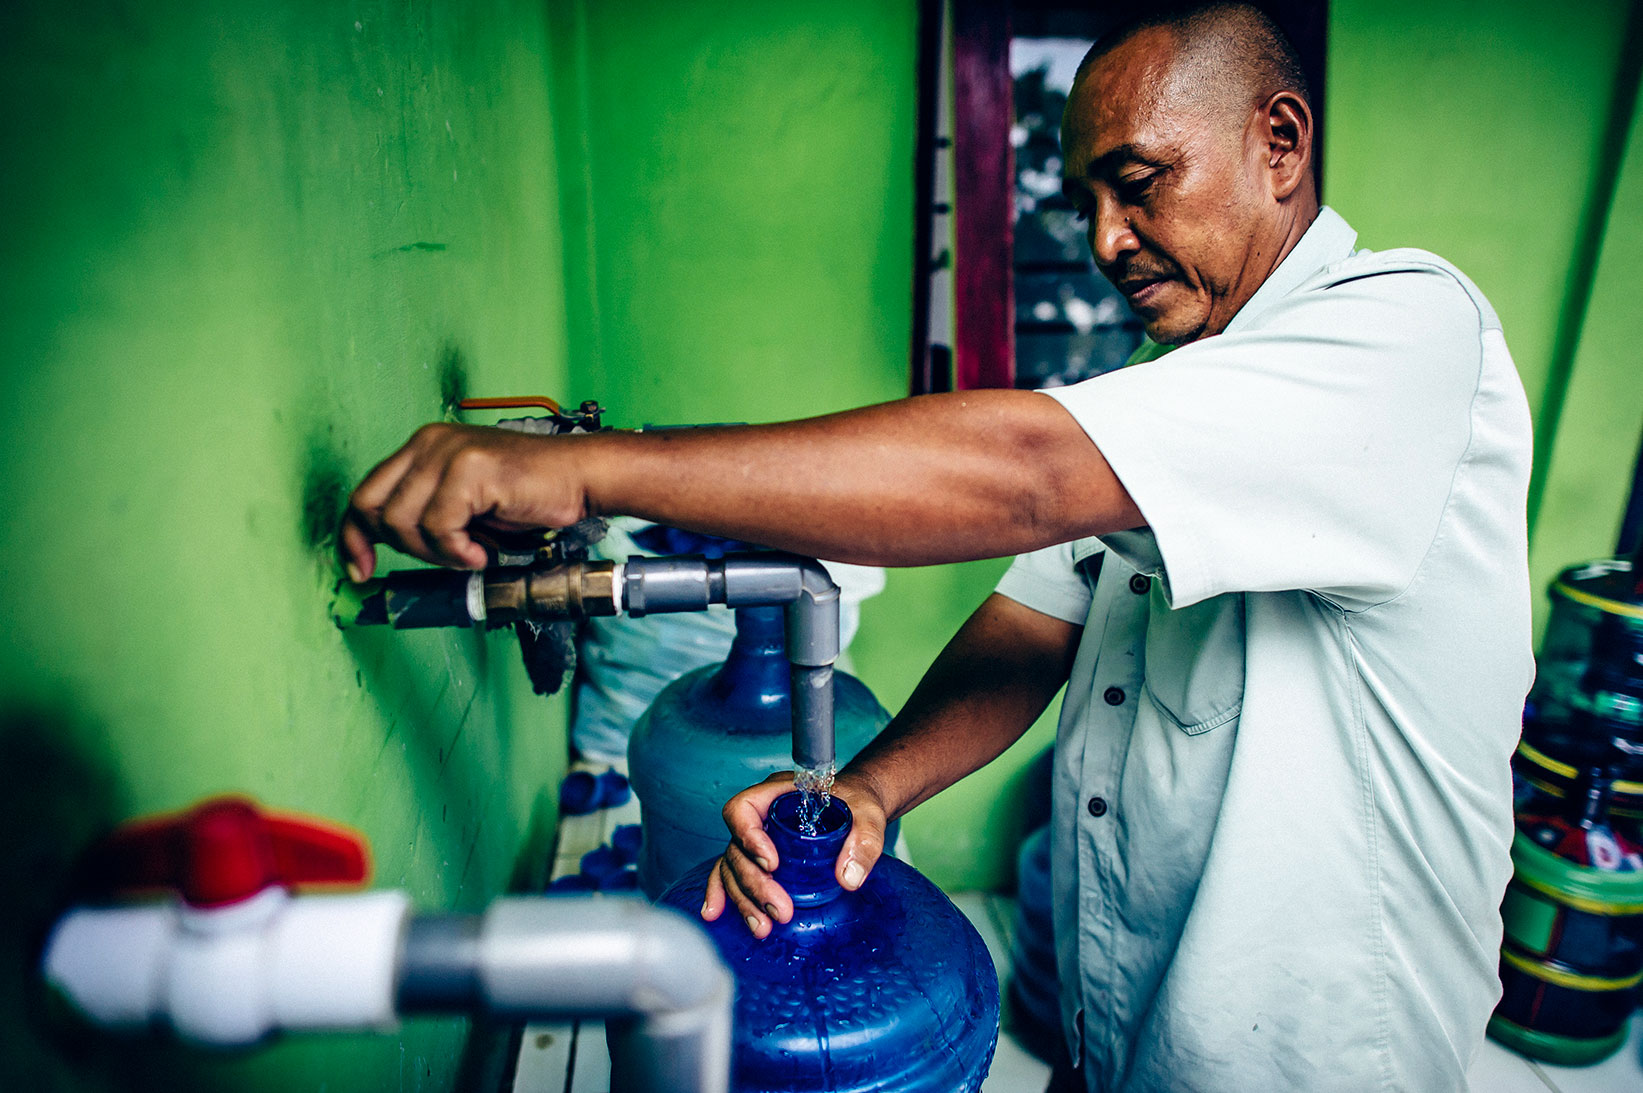 The system operator fills a jug with safe water.